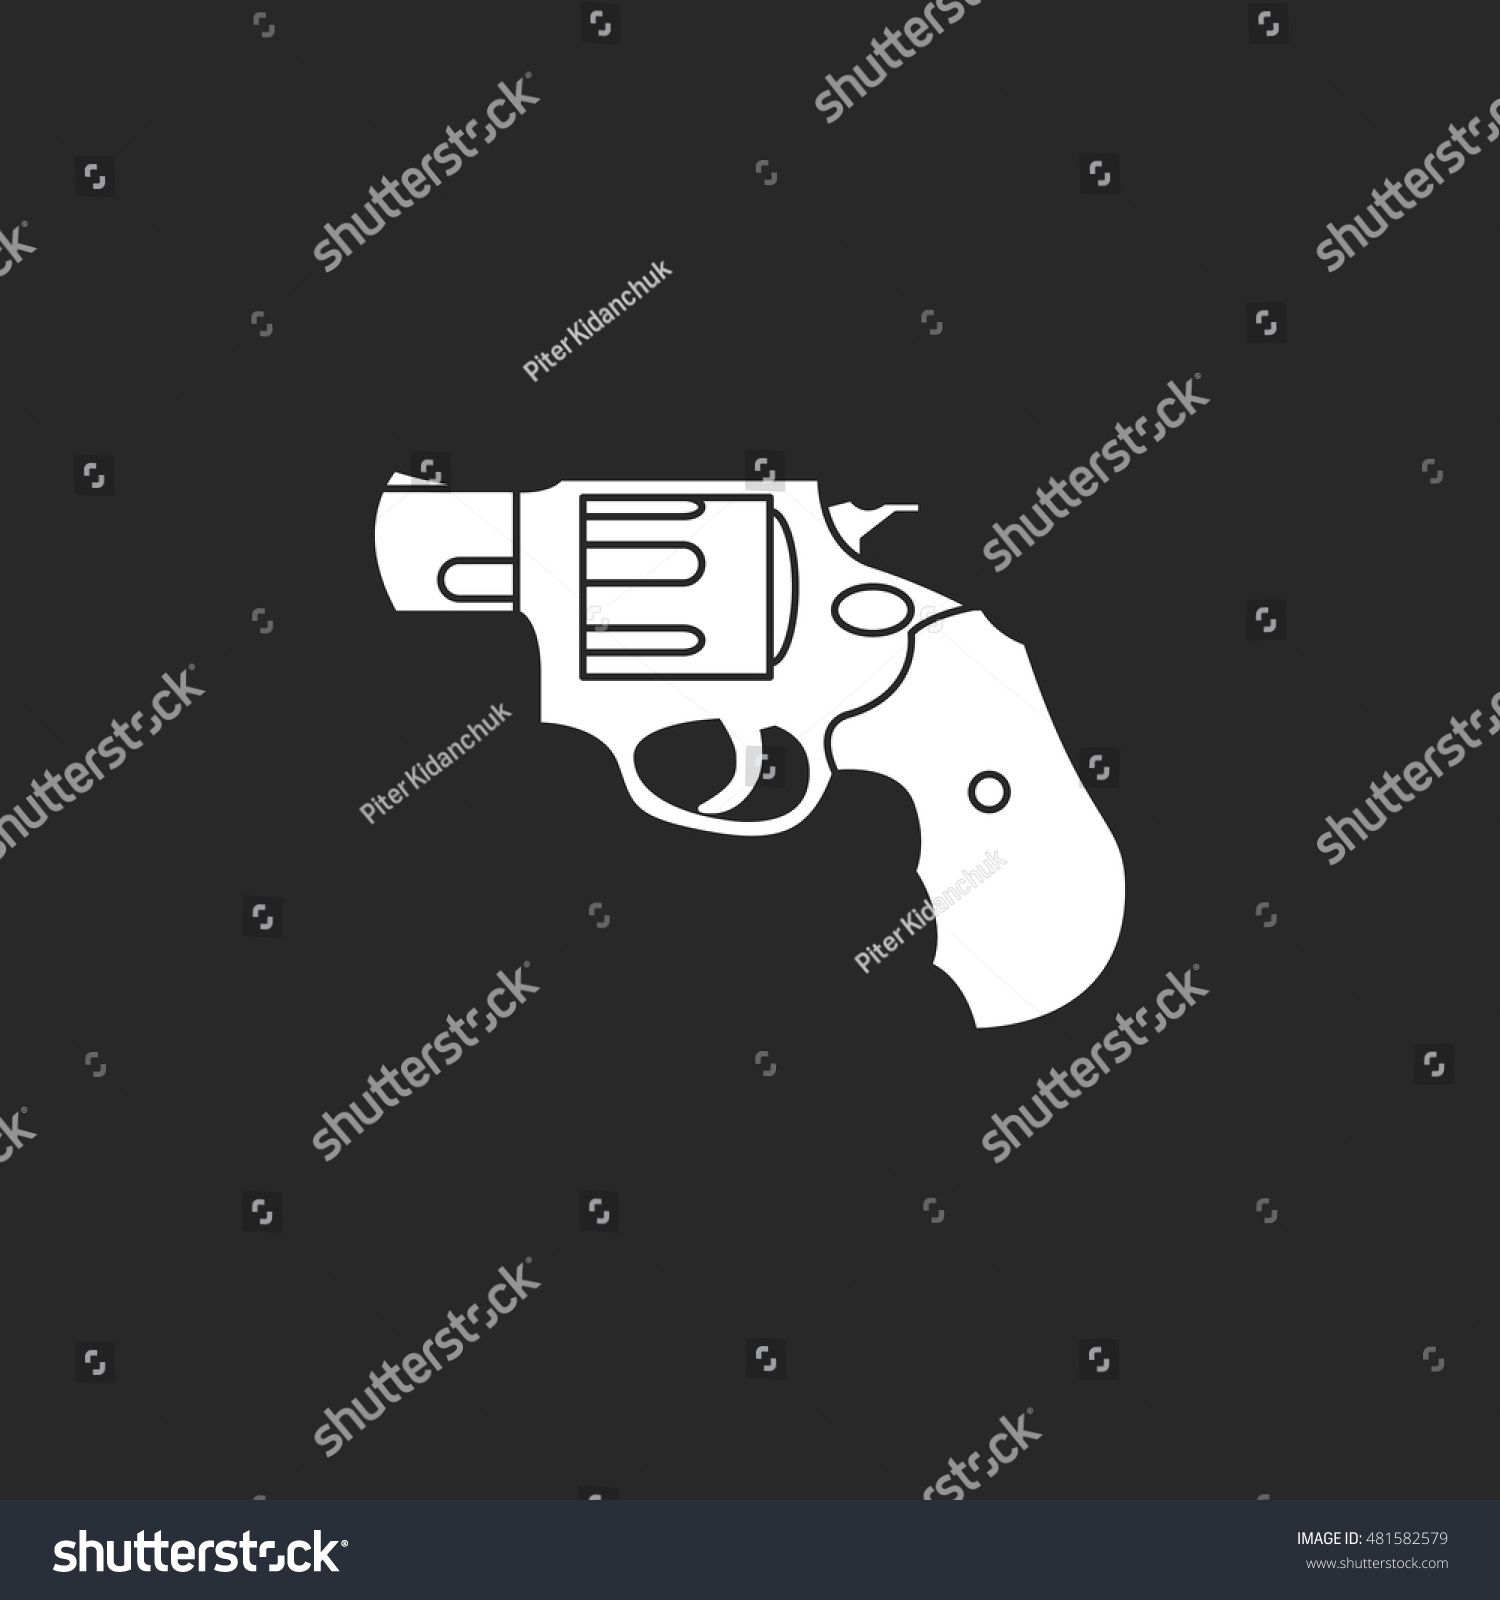 Colt stock symbol gallery symbol and sign ideas revolver gun symbol sign flat icon stock vector 481582579 revolver gun symbol sign flat icon on biocorpaavc